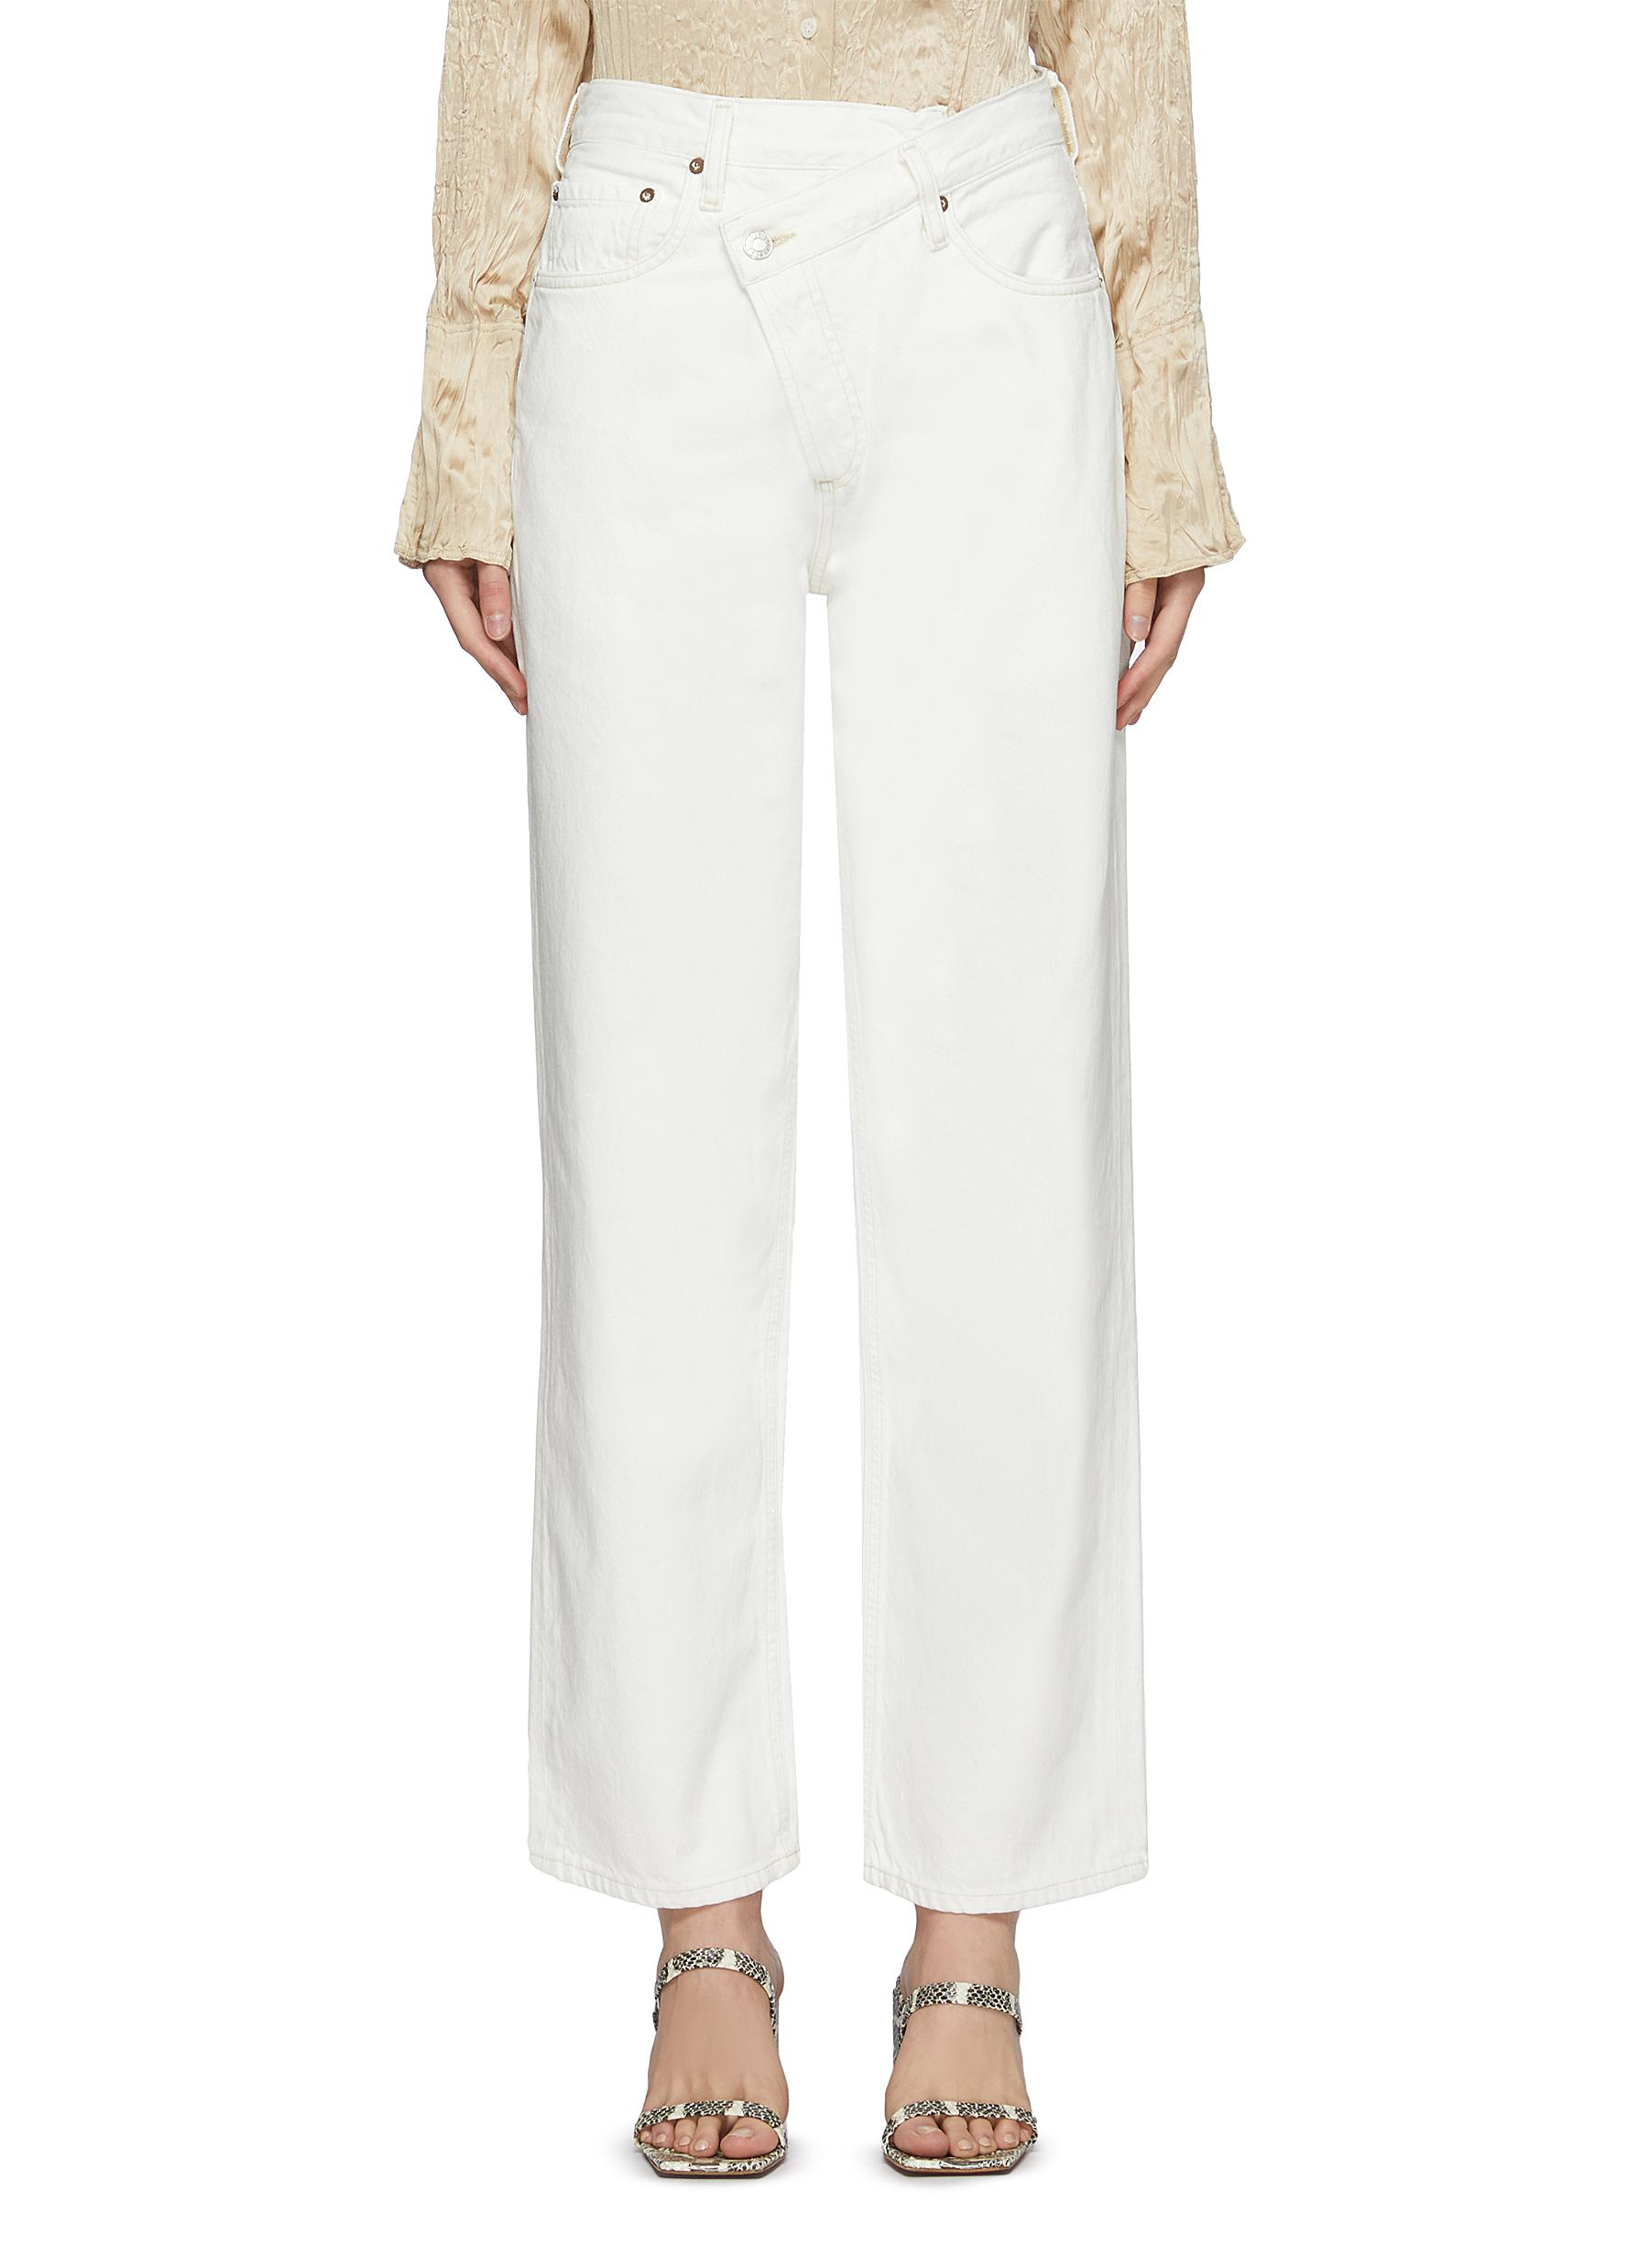 Displaced Waistband Bleached Wide Leg Jeans